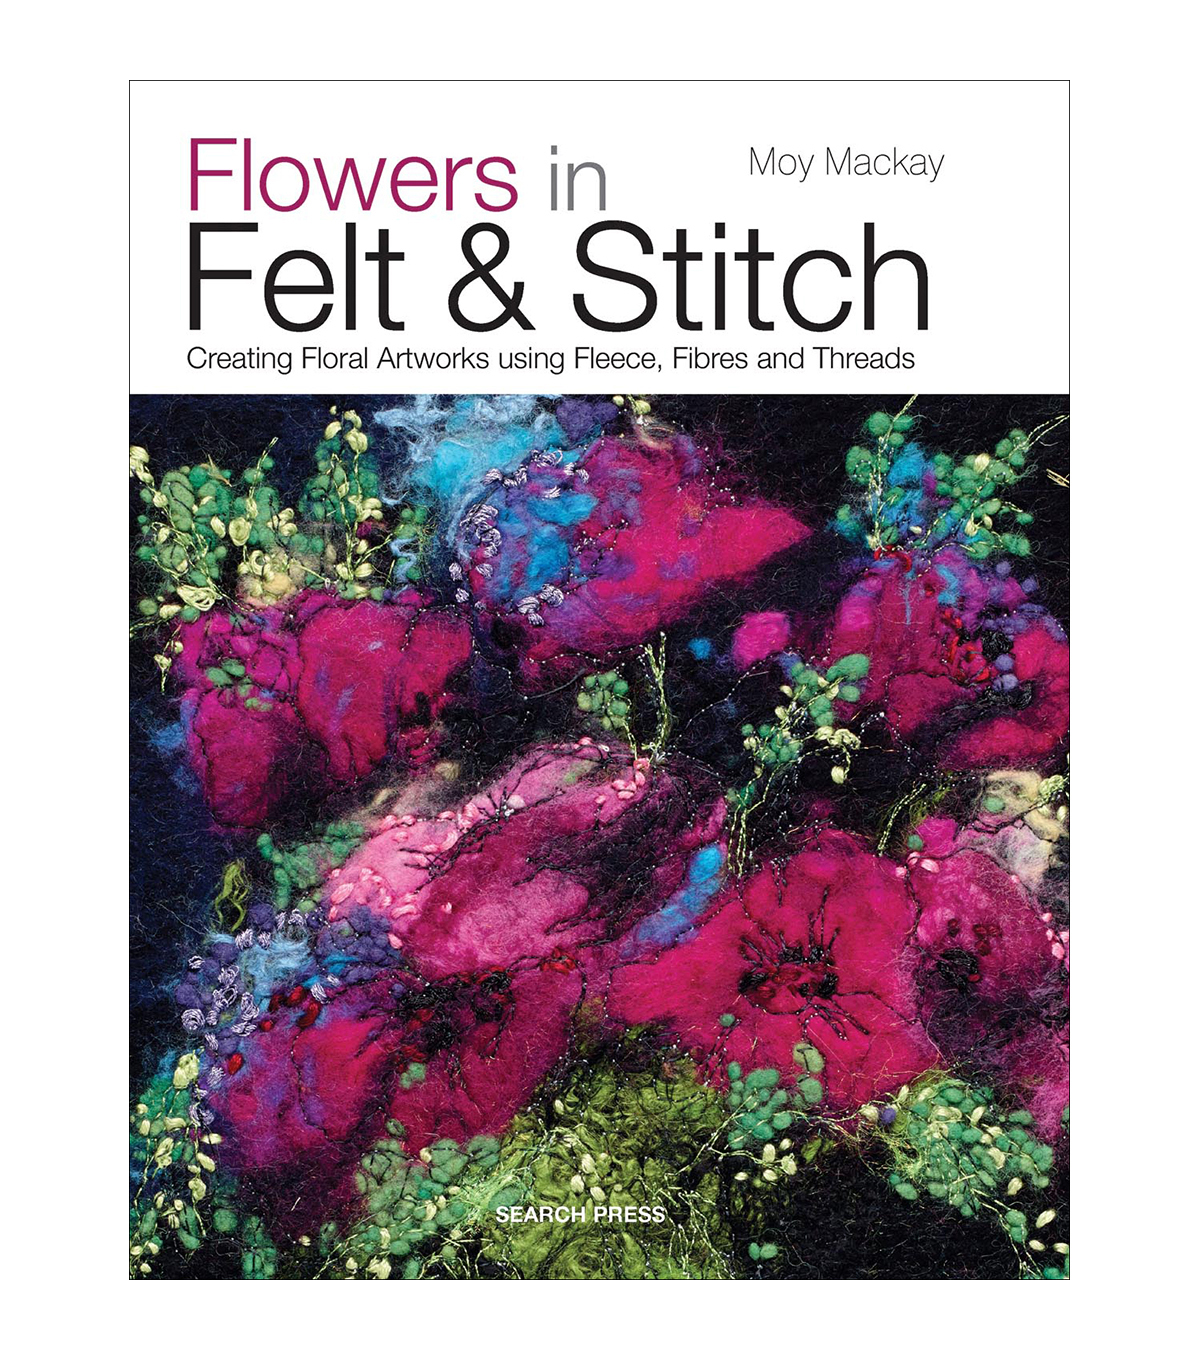 Flowers In Felt & Stitch-Creating Floral Artworks using Fleece, Fibres and Threads